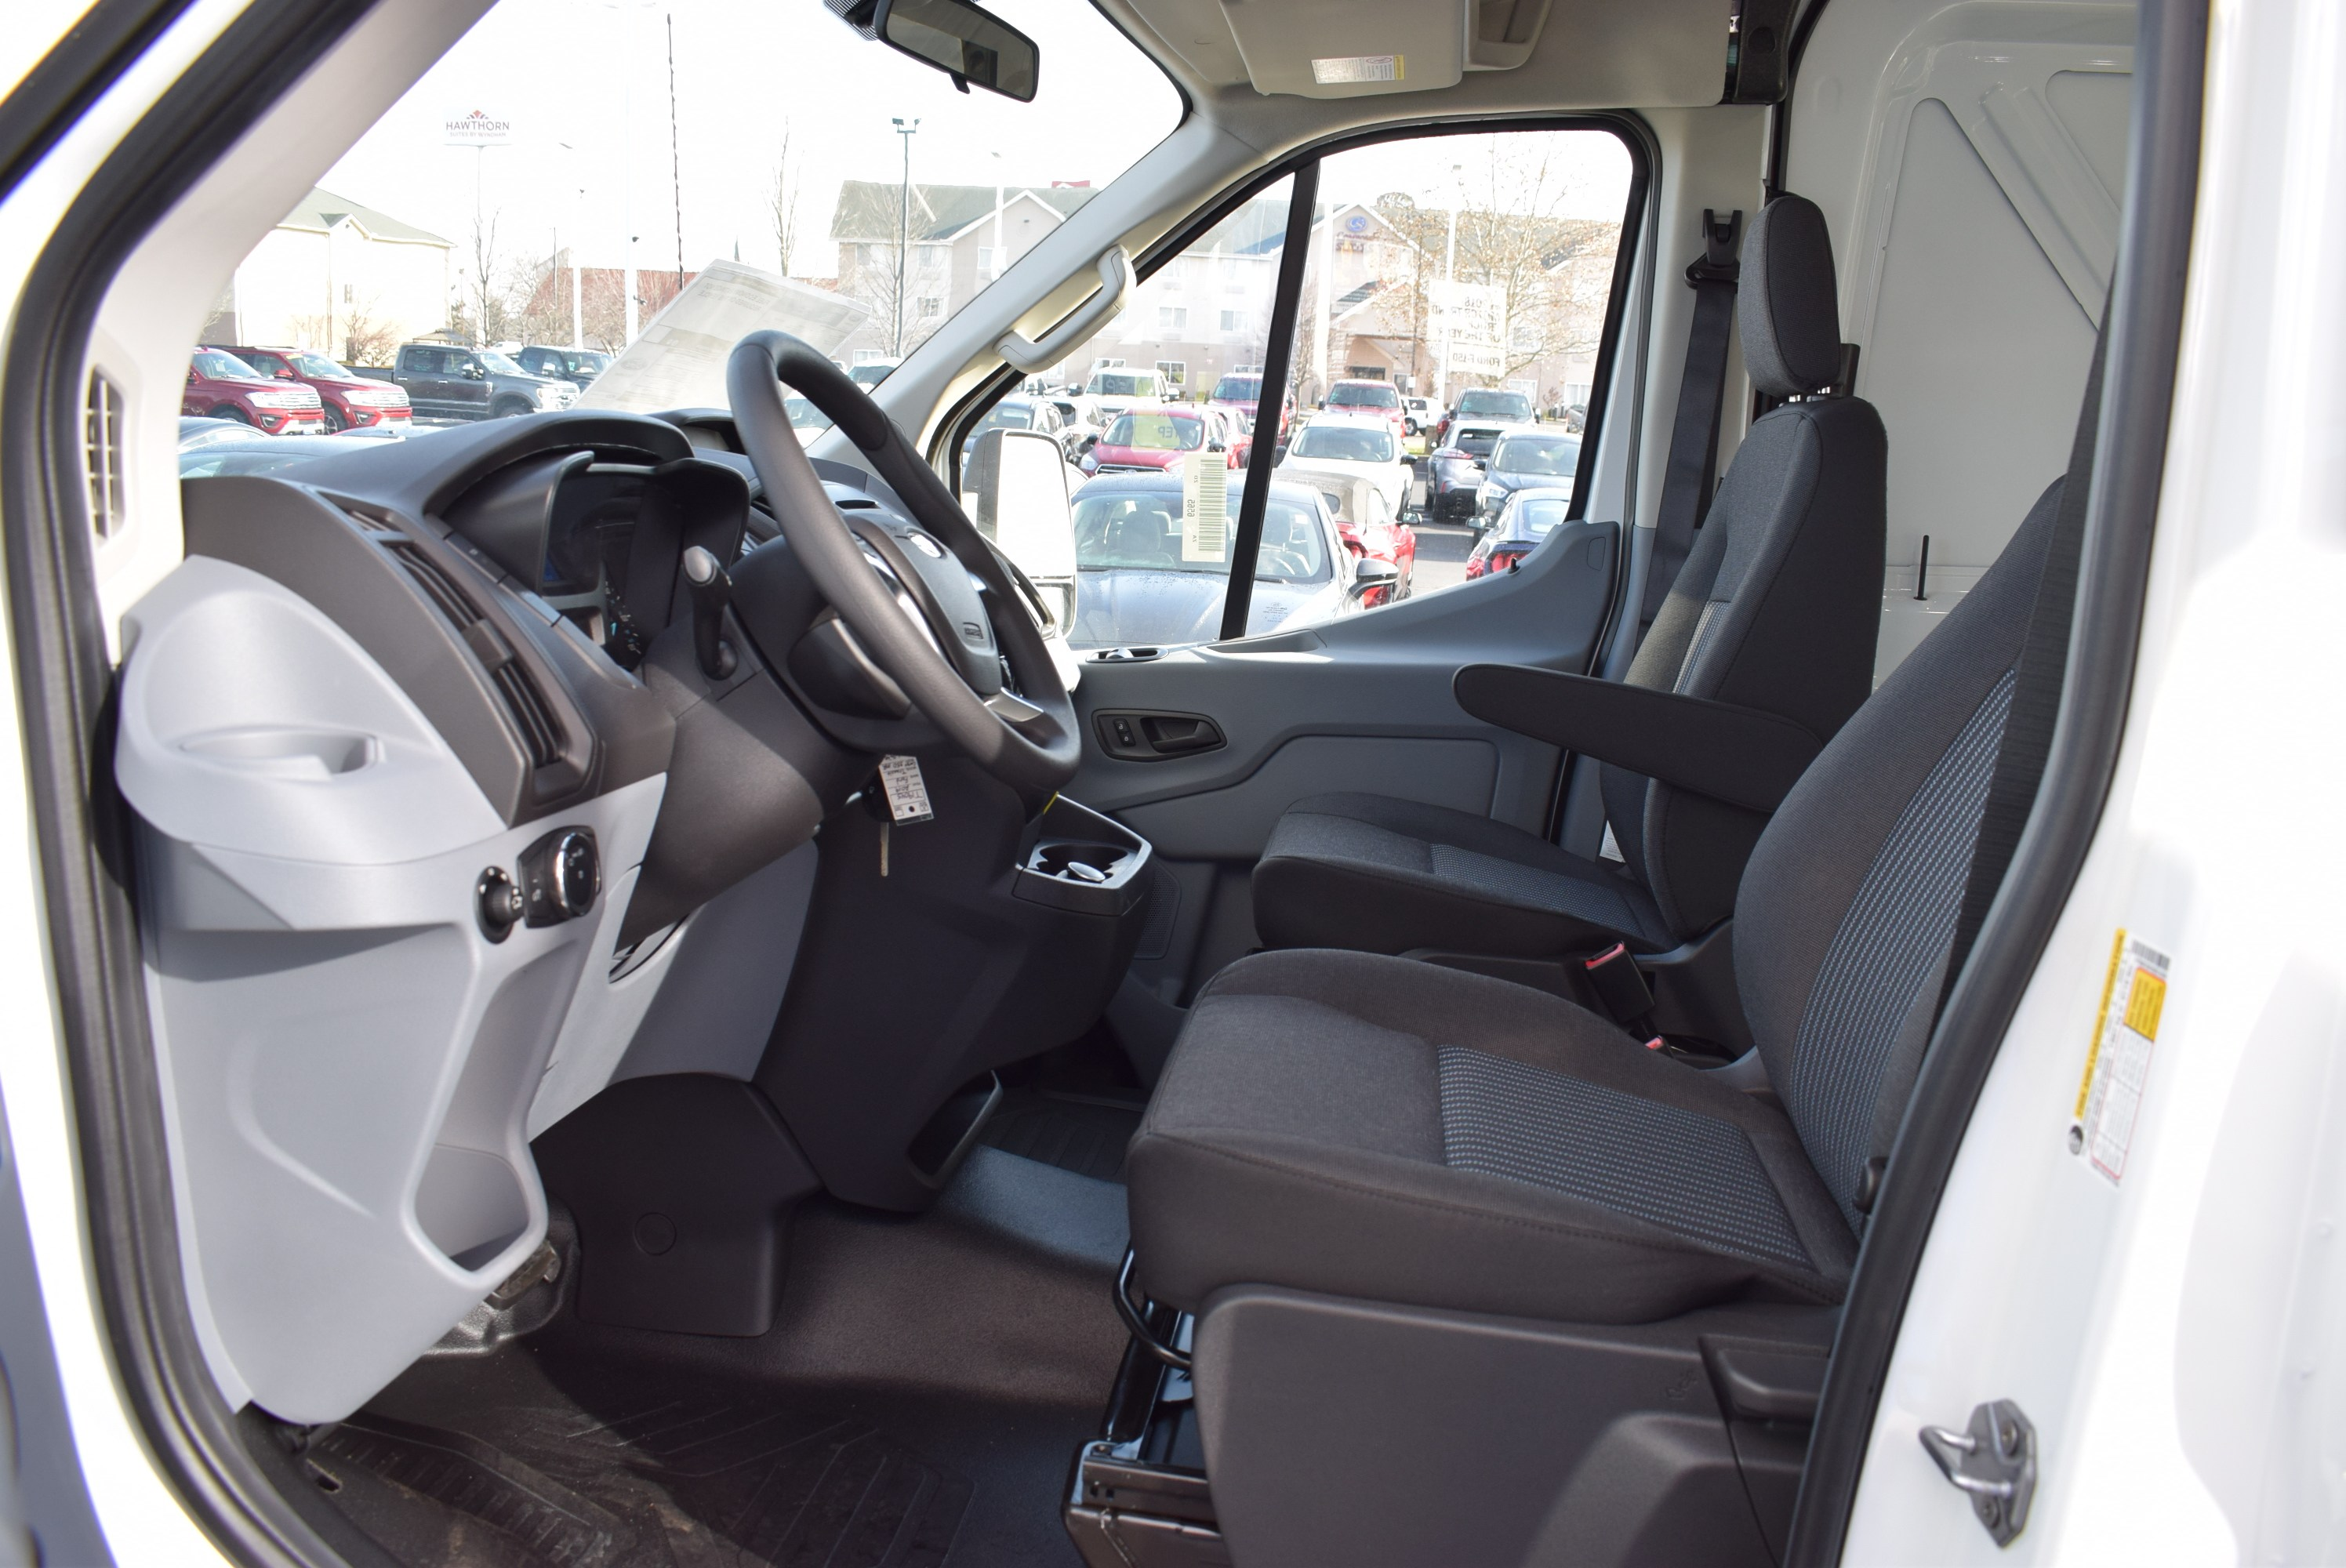 2019 Transit 350 Med Roof 4x2,  Empty Cargo Van #T19045 - photo 13